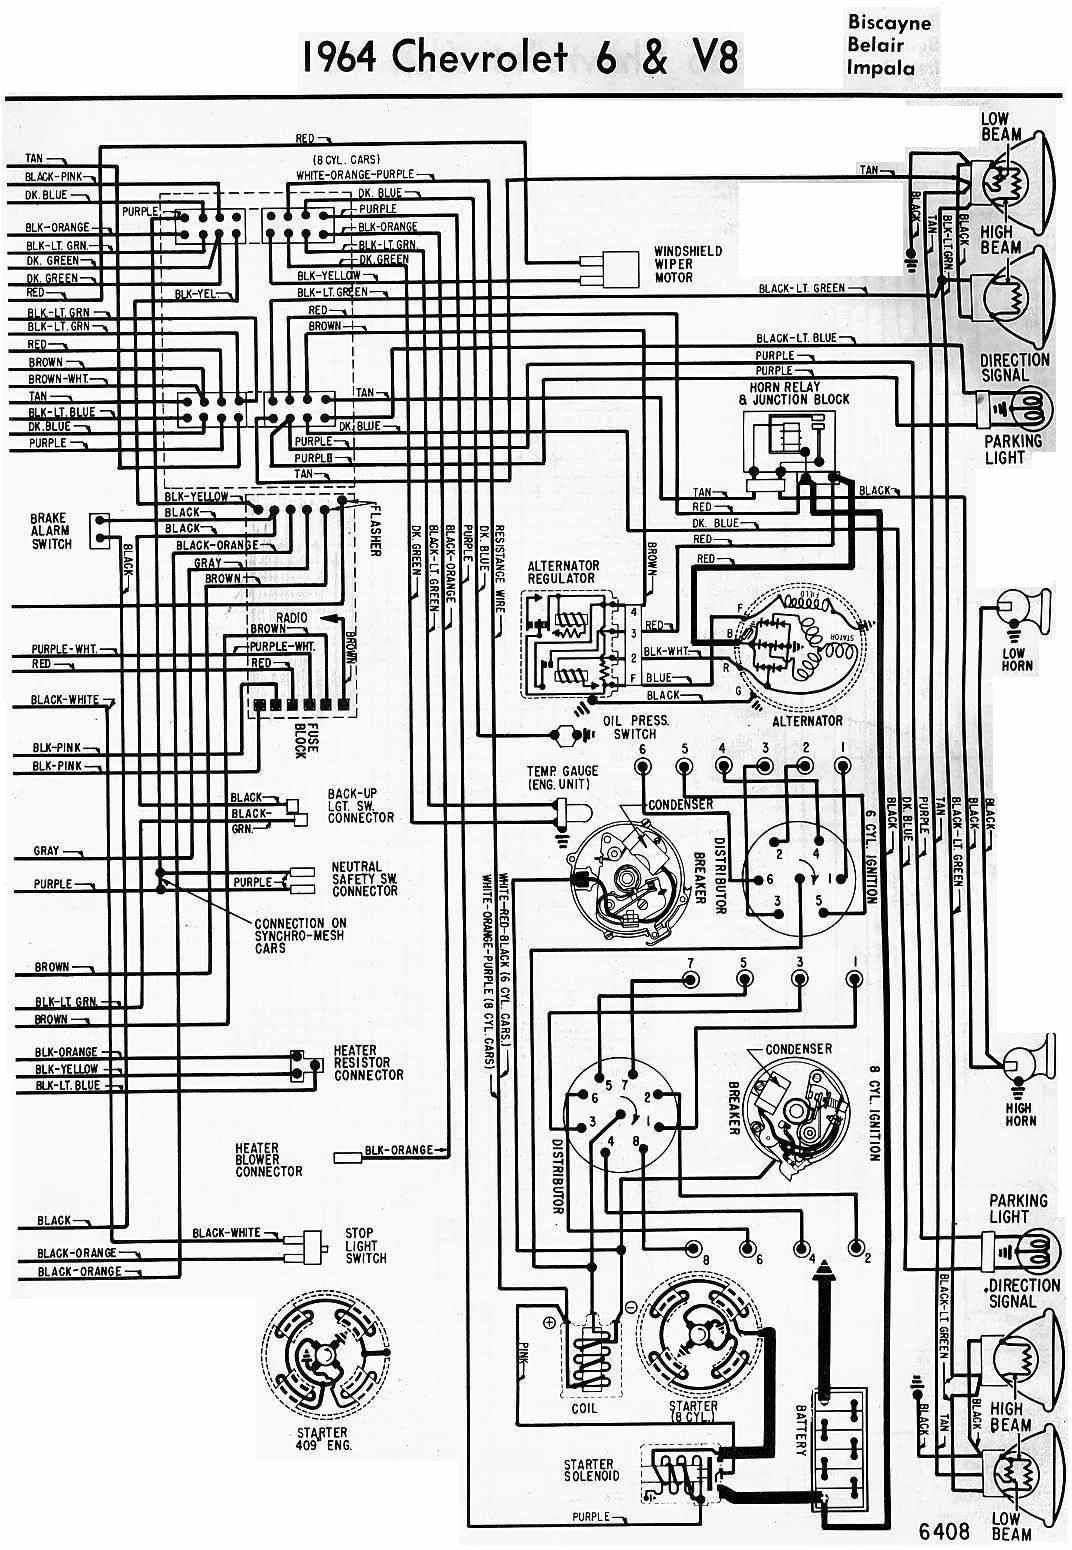 Signal Wiring Diagram 1966 Nova Exclusive Circuit 1970 Chevy Pickup Electrical Of 1964 Chevrolet 6 And V8 All 1967